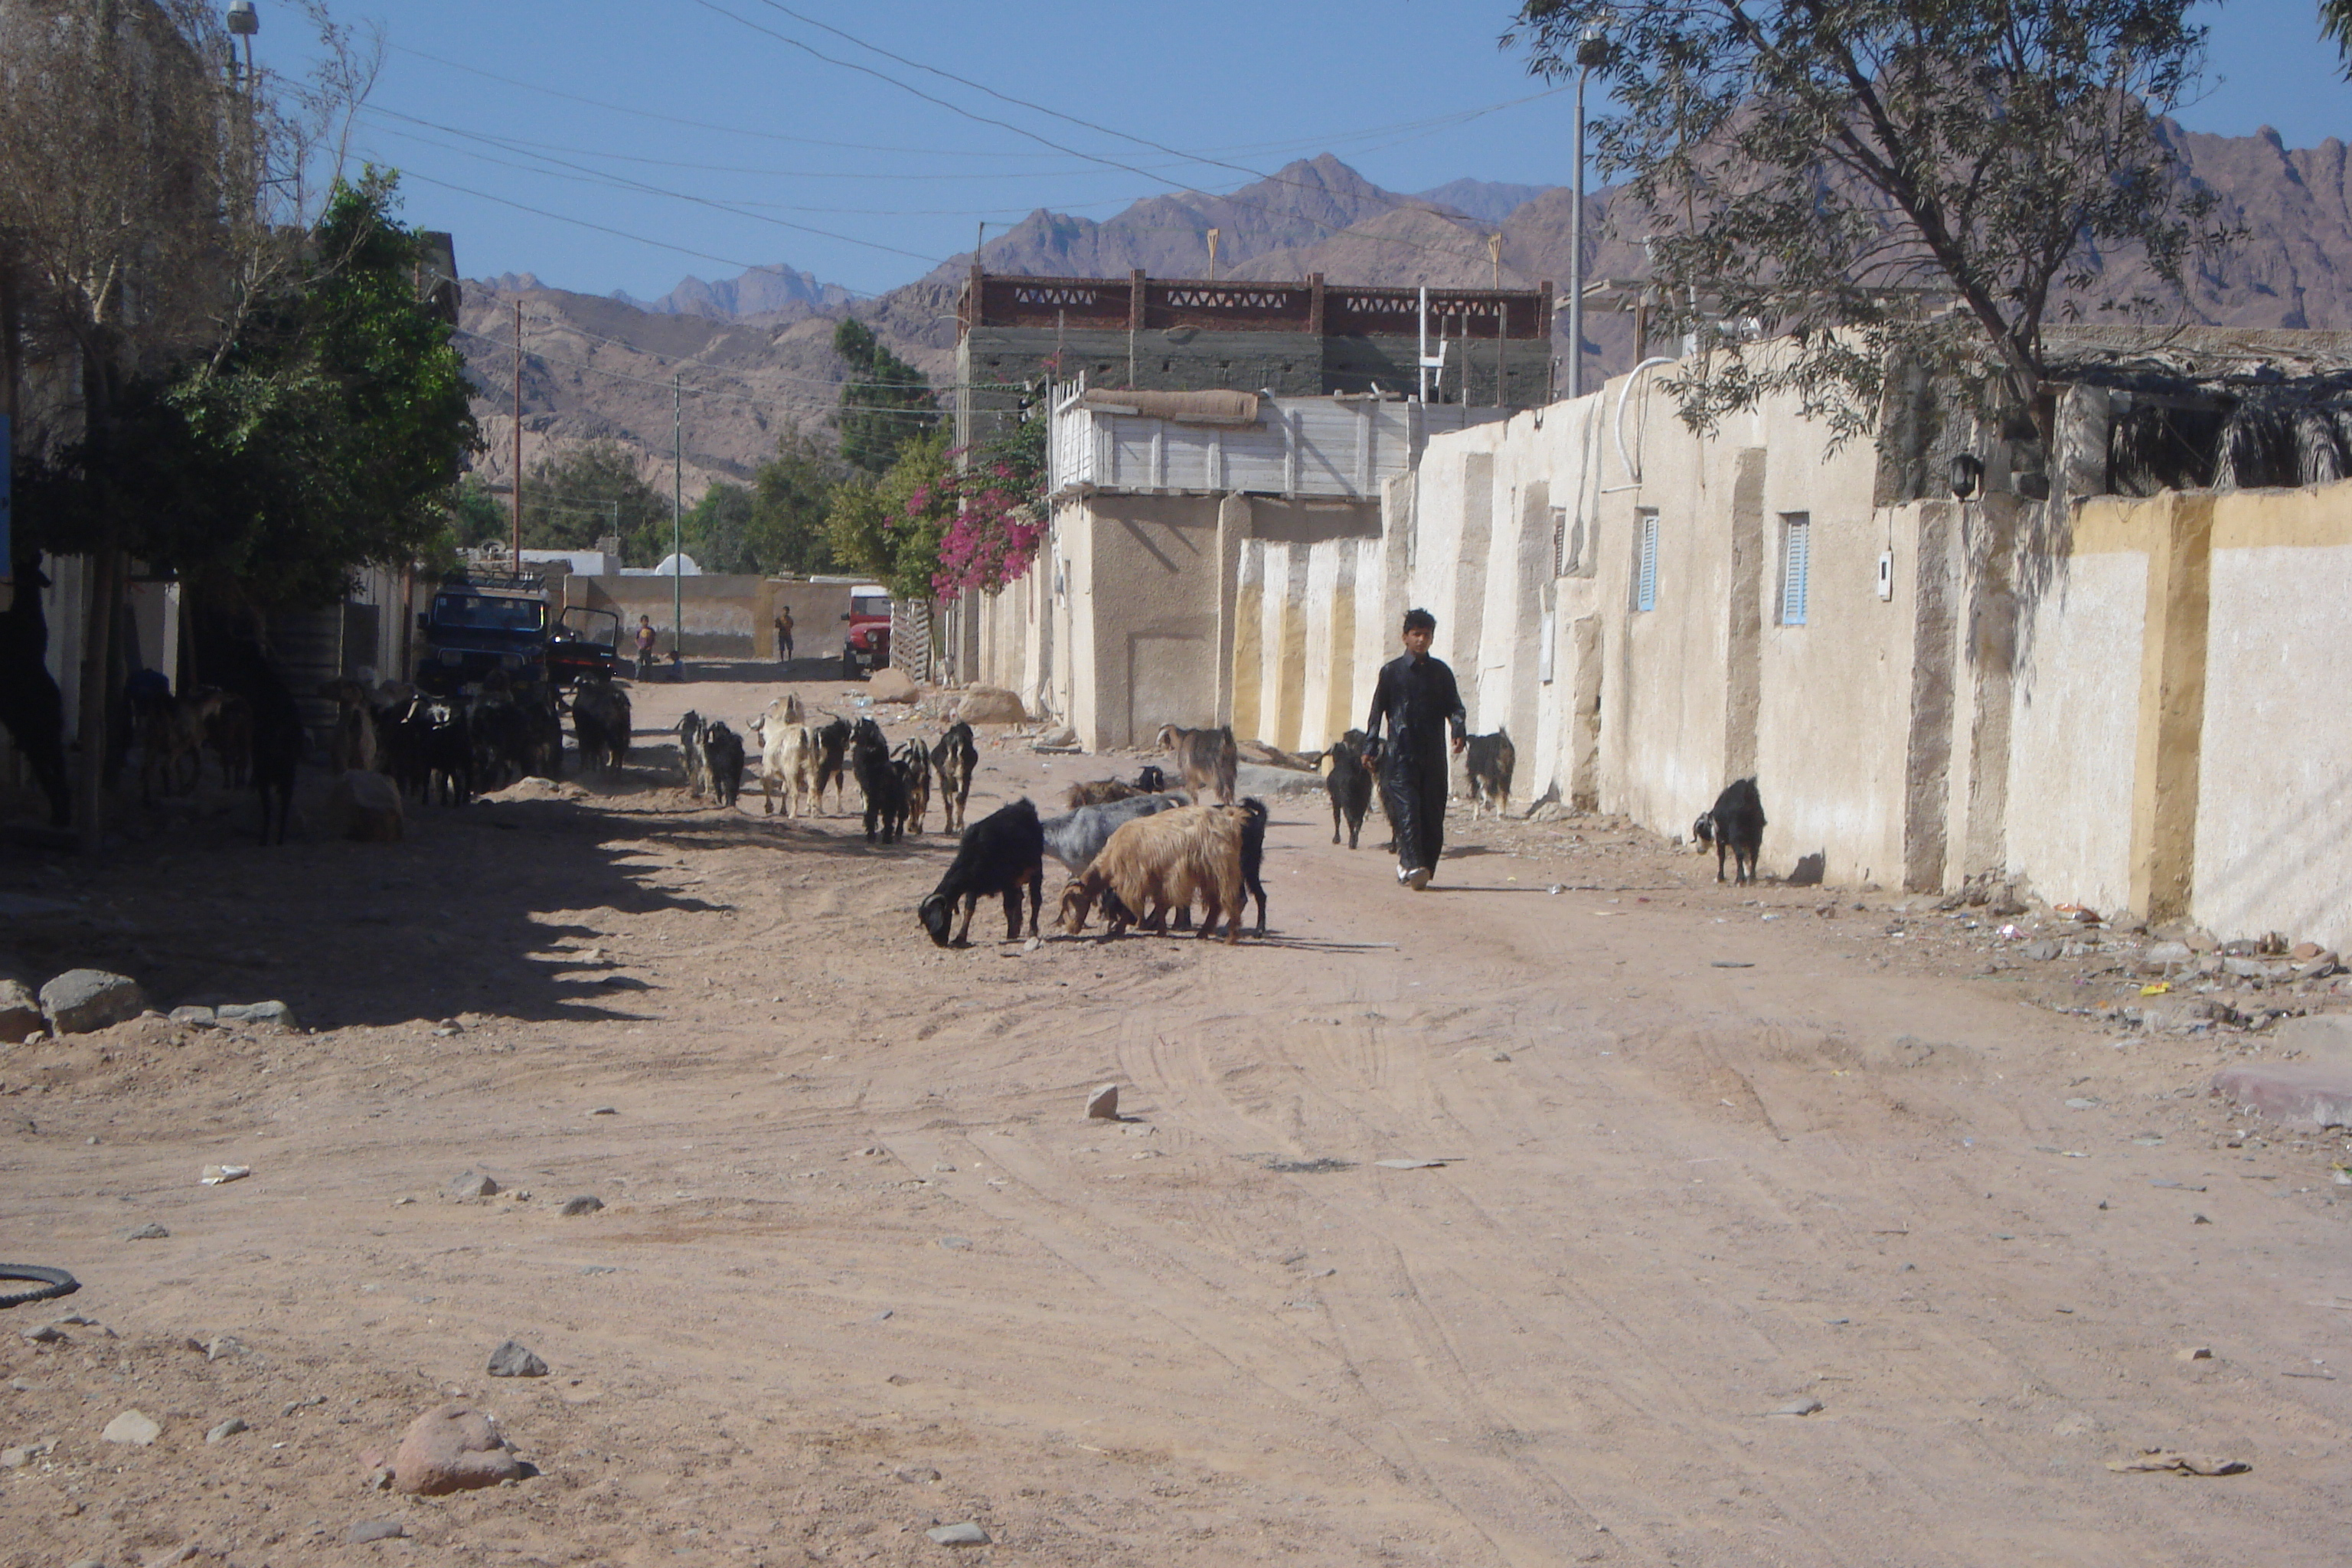 Village In Upper Egypt - A Street Made Of Dirt In Egypt, With Goats And A Boy Walking Wearing A Black Jalabeya